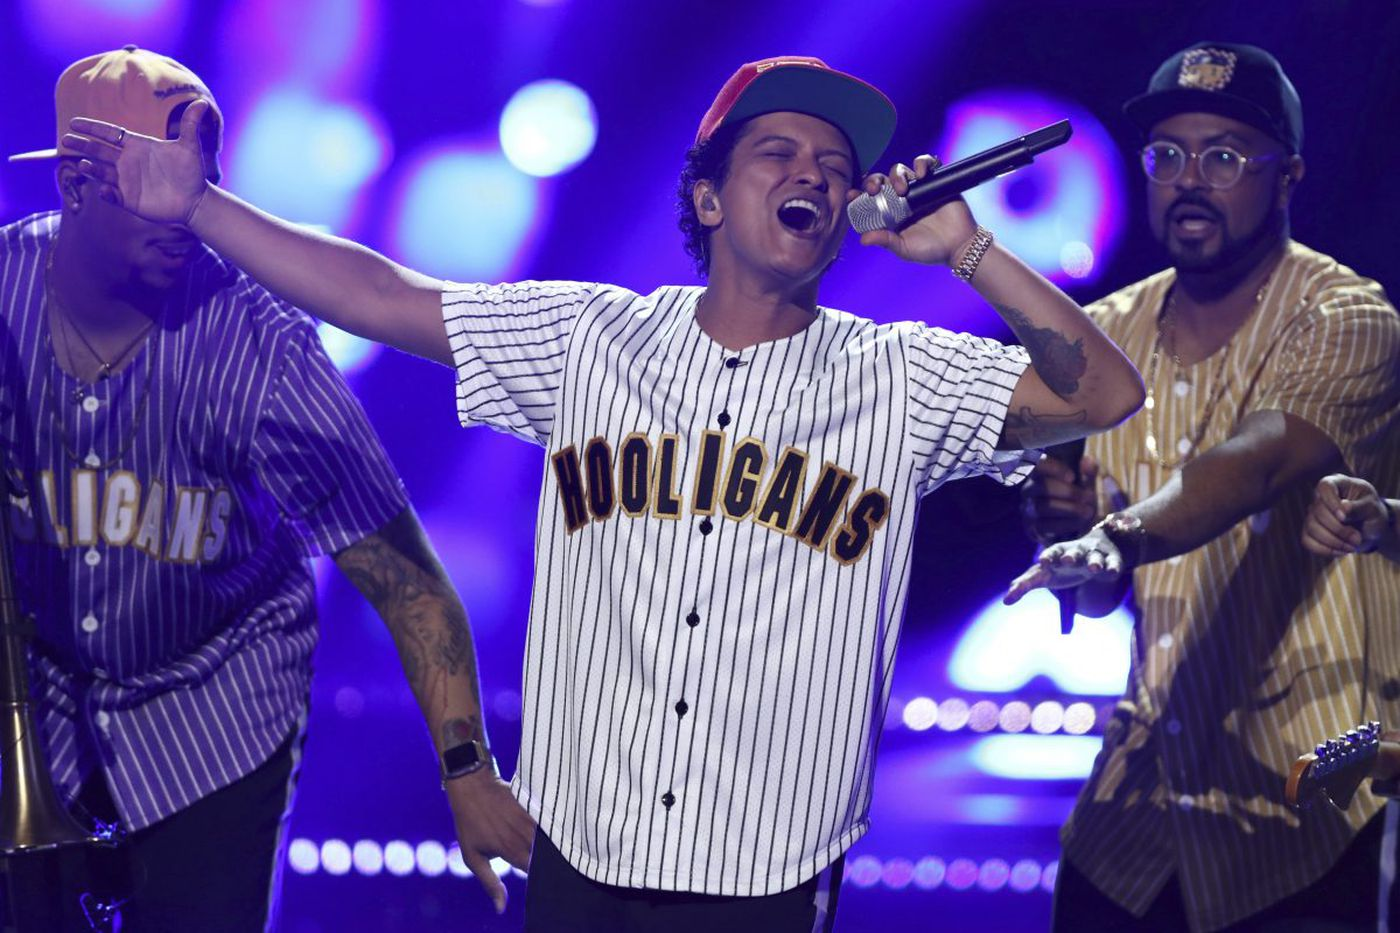 Bruno Mars goes for straightforward (and sometimes monotonous) funk at the Wells Fargo Center